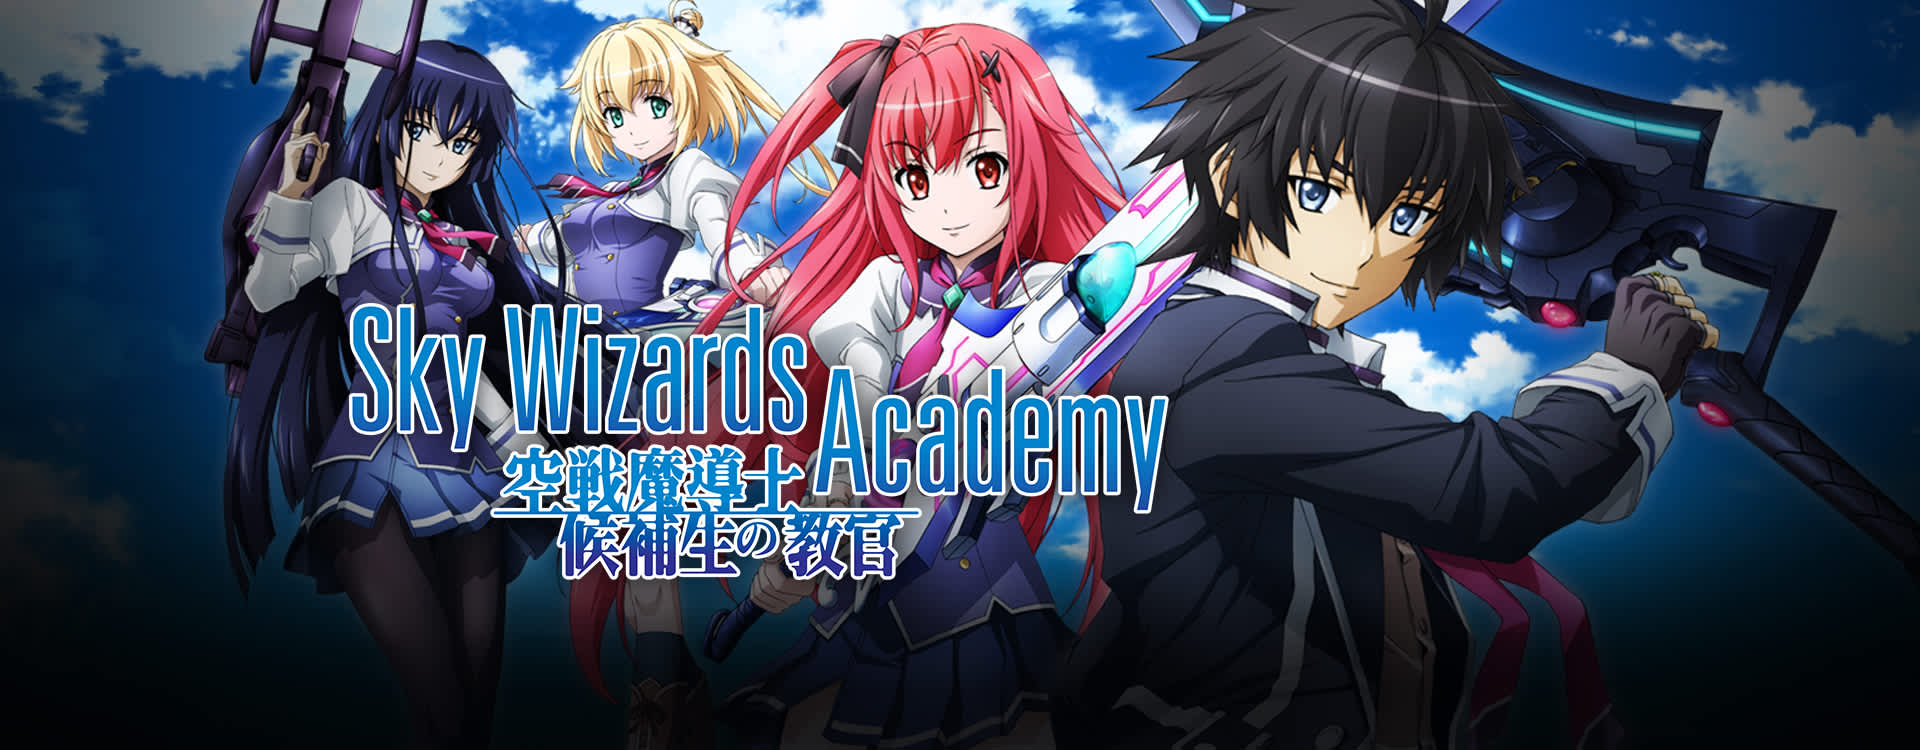 Watch Sky Wizards Academy Episodes Sub & Dub | Action